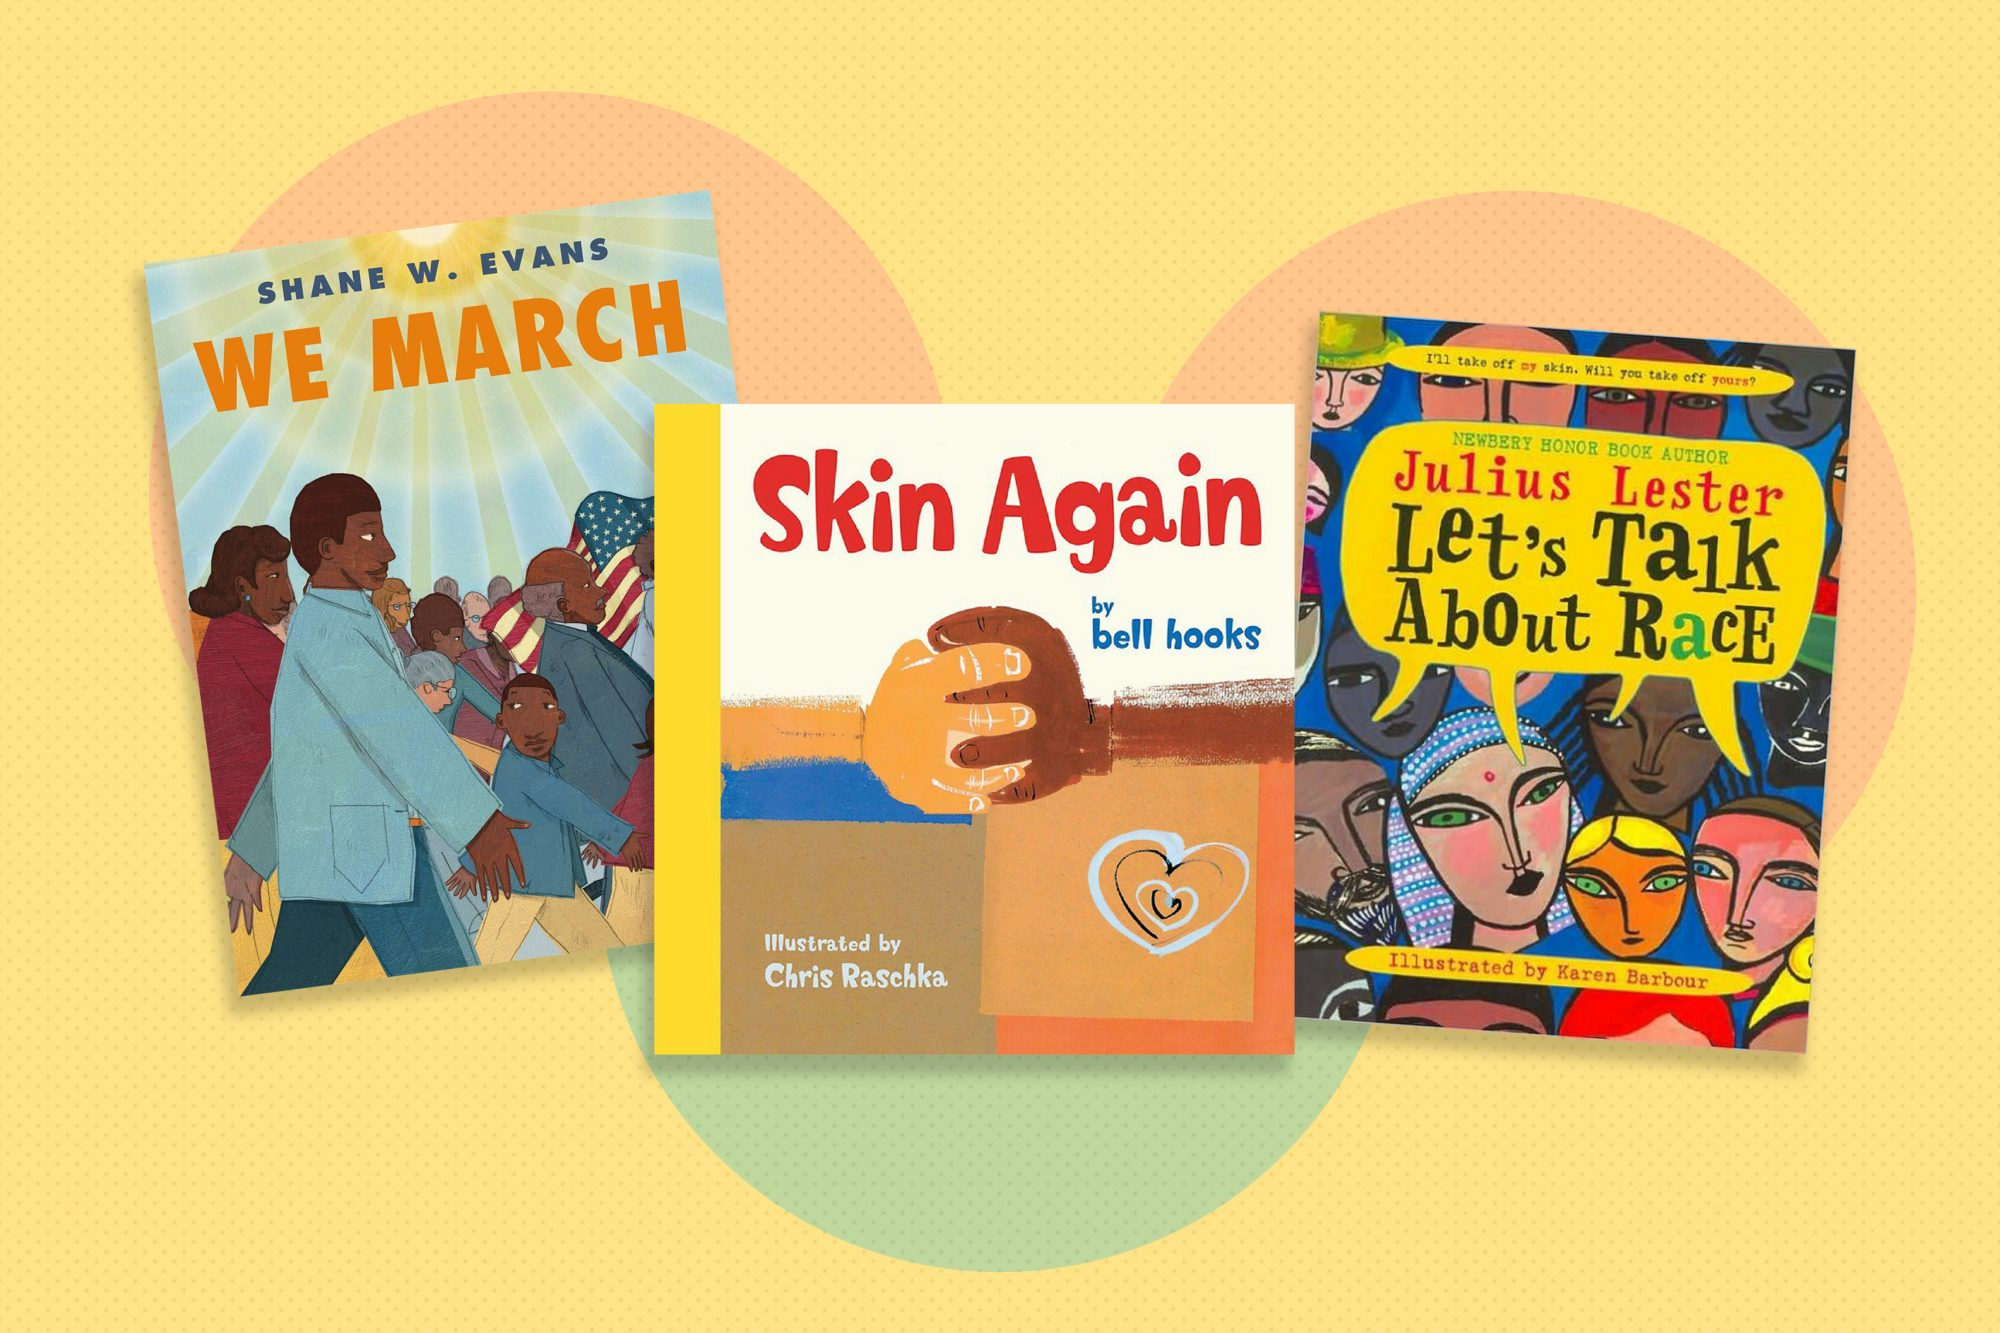 childrens books on diversity with patterned background